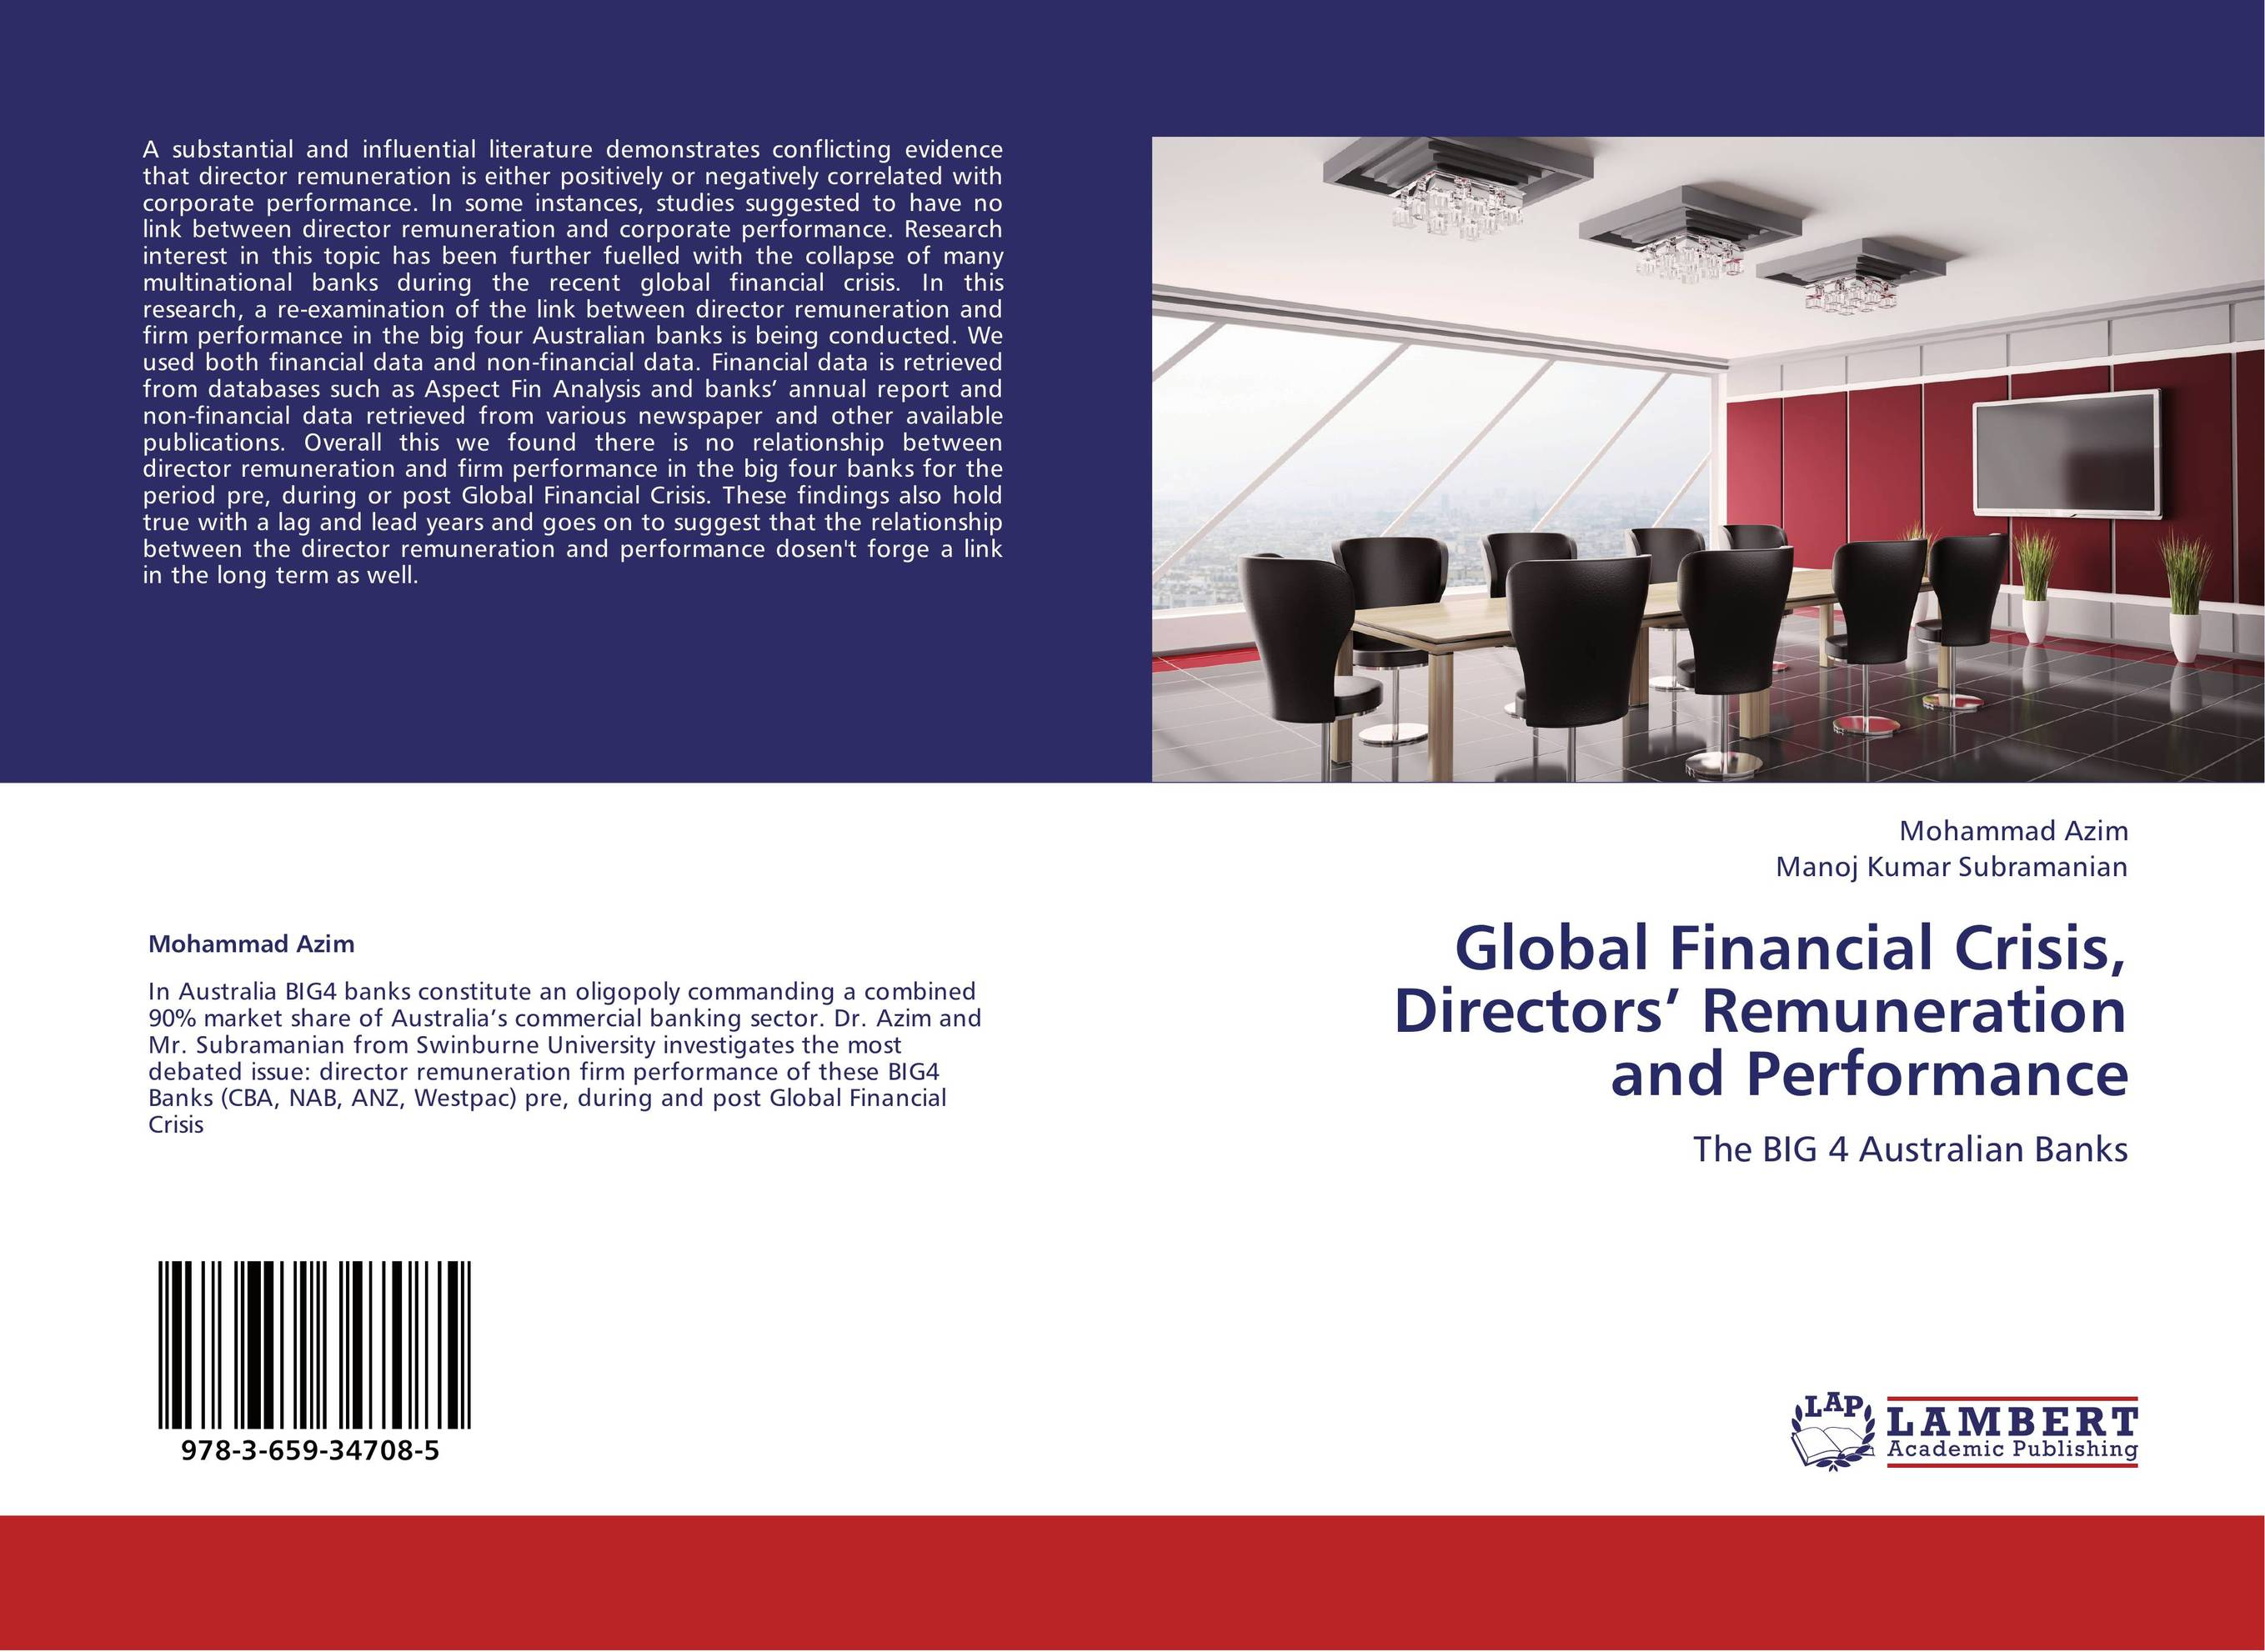 dissertation directors remuneration Directors' remuneration discuss the policy problems related to directors' remuneration and how statutes and/or corporate governance codes regulate this issue.